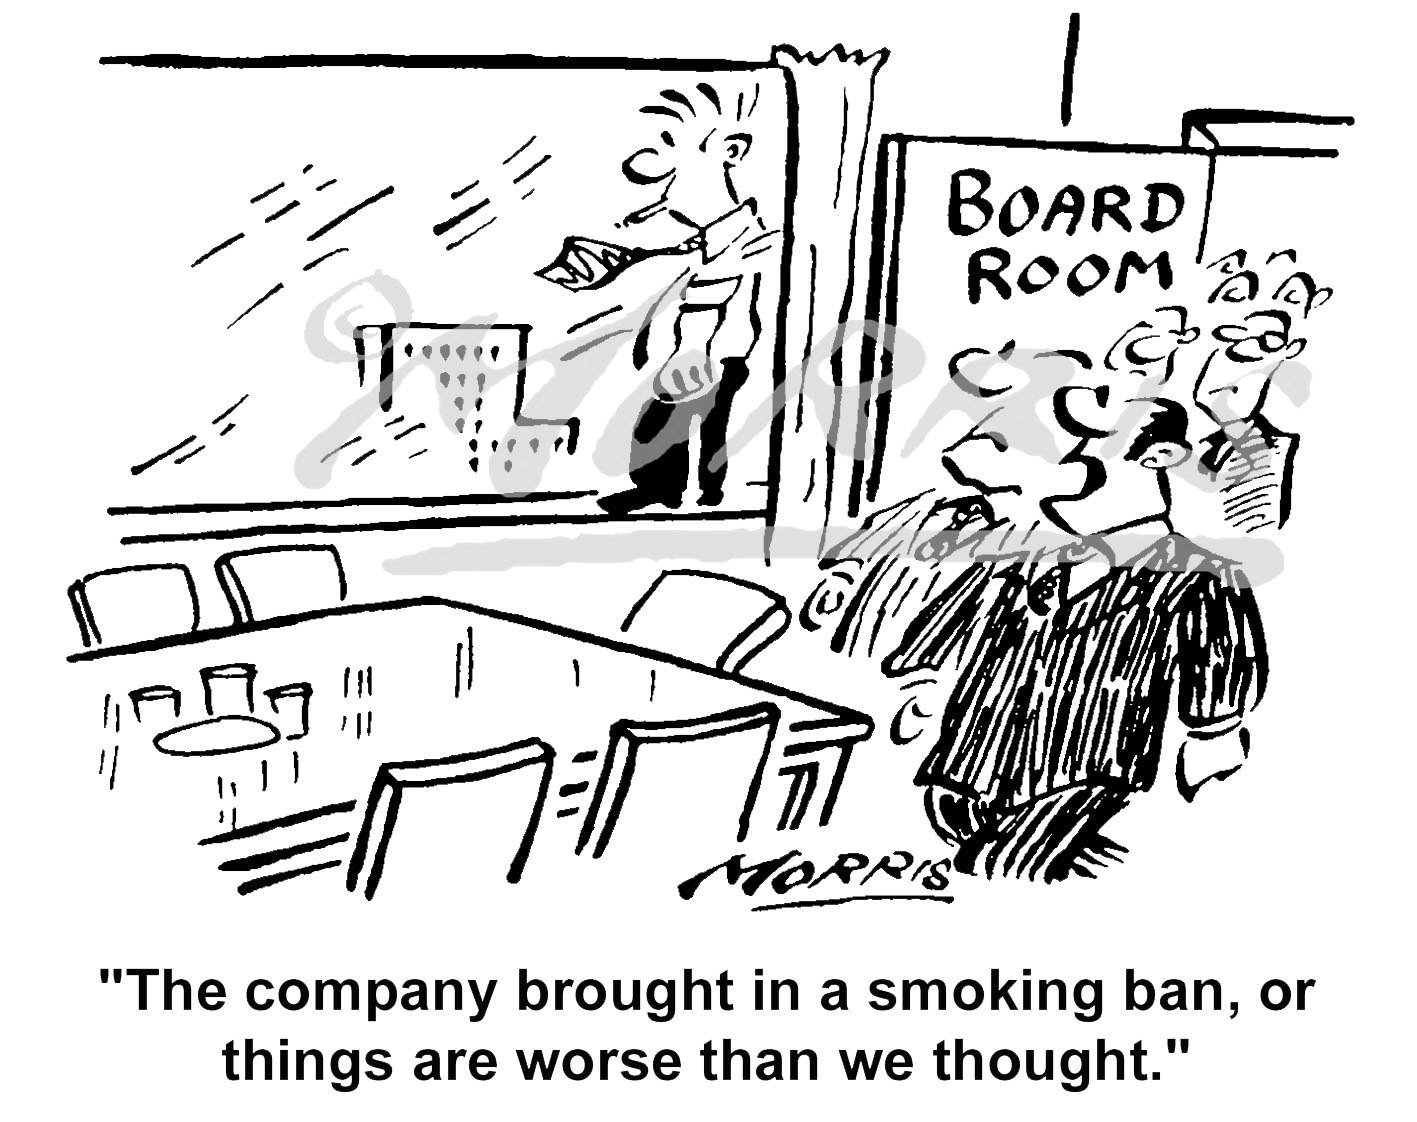 Boardroom smoking cartoon Ref: 4647bw